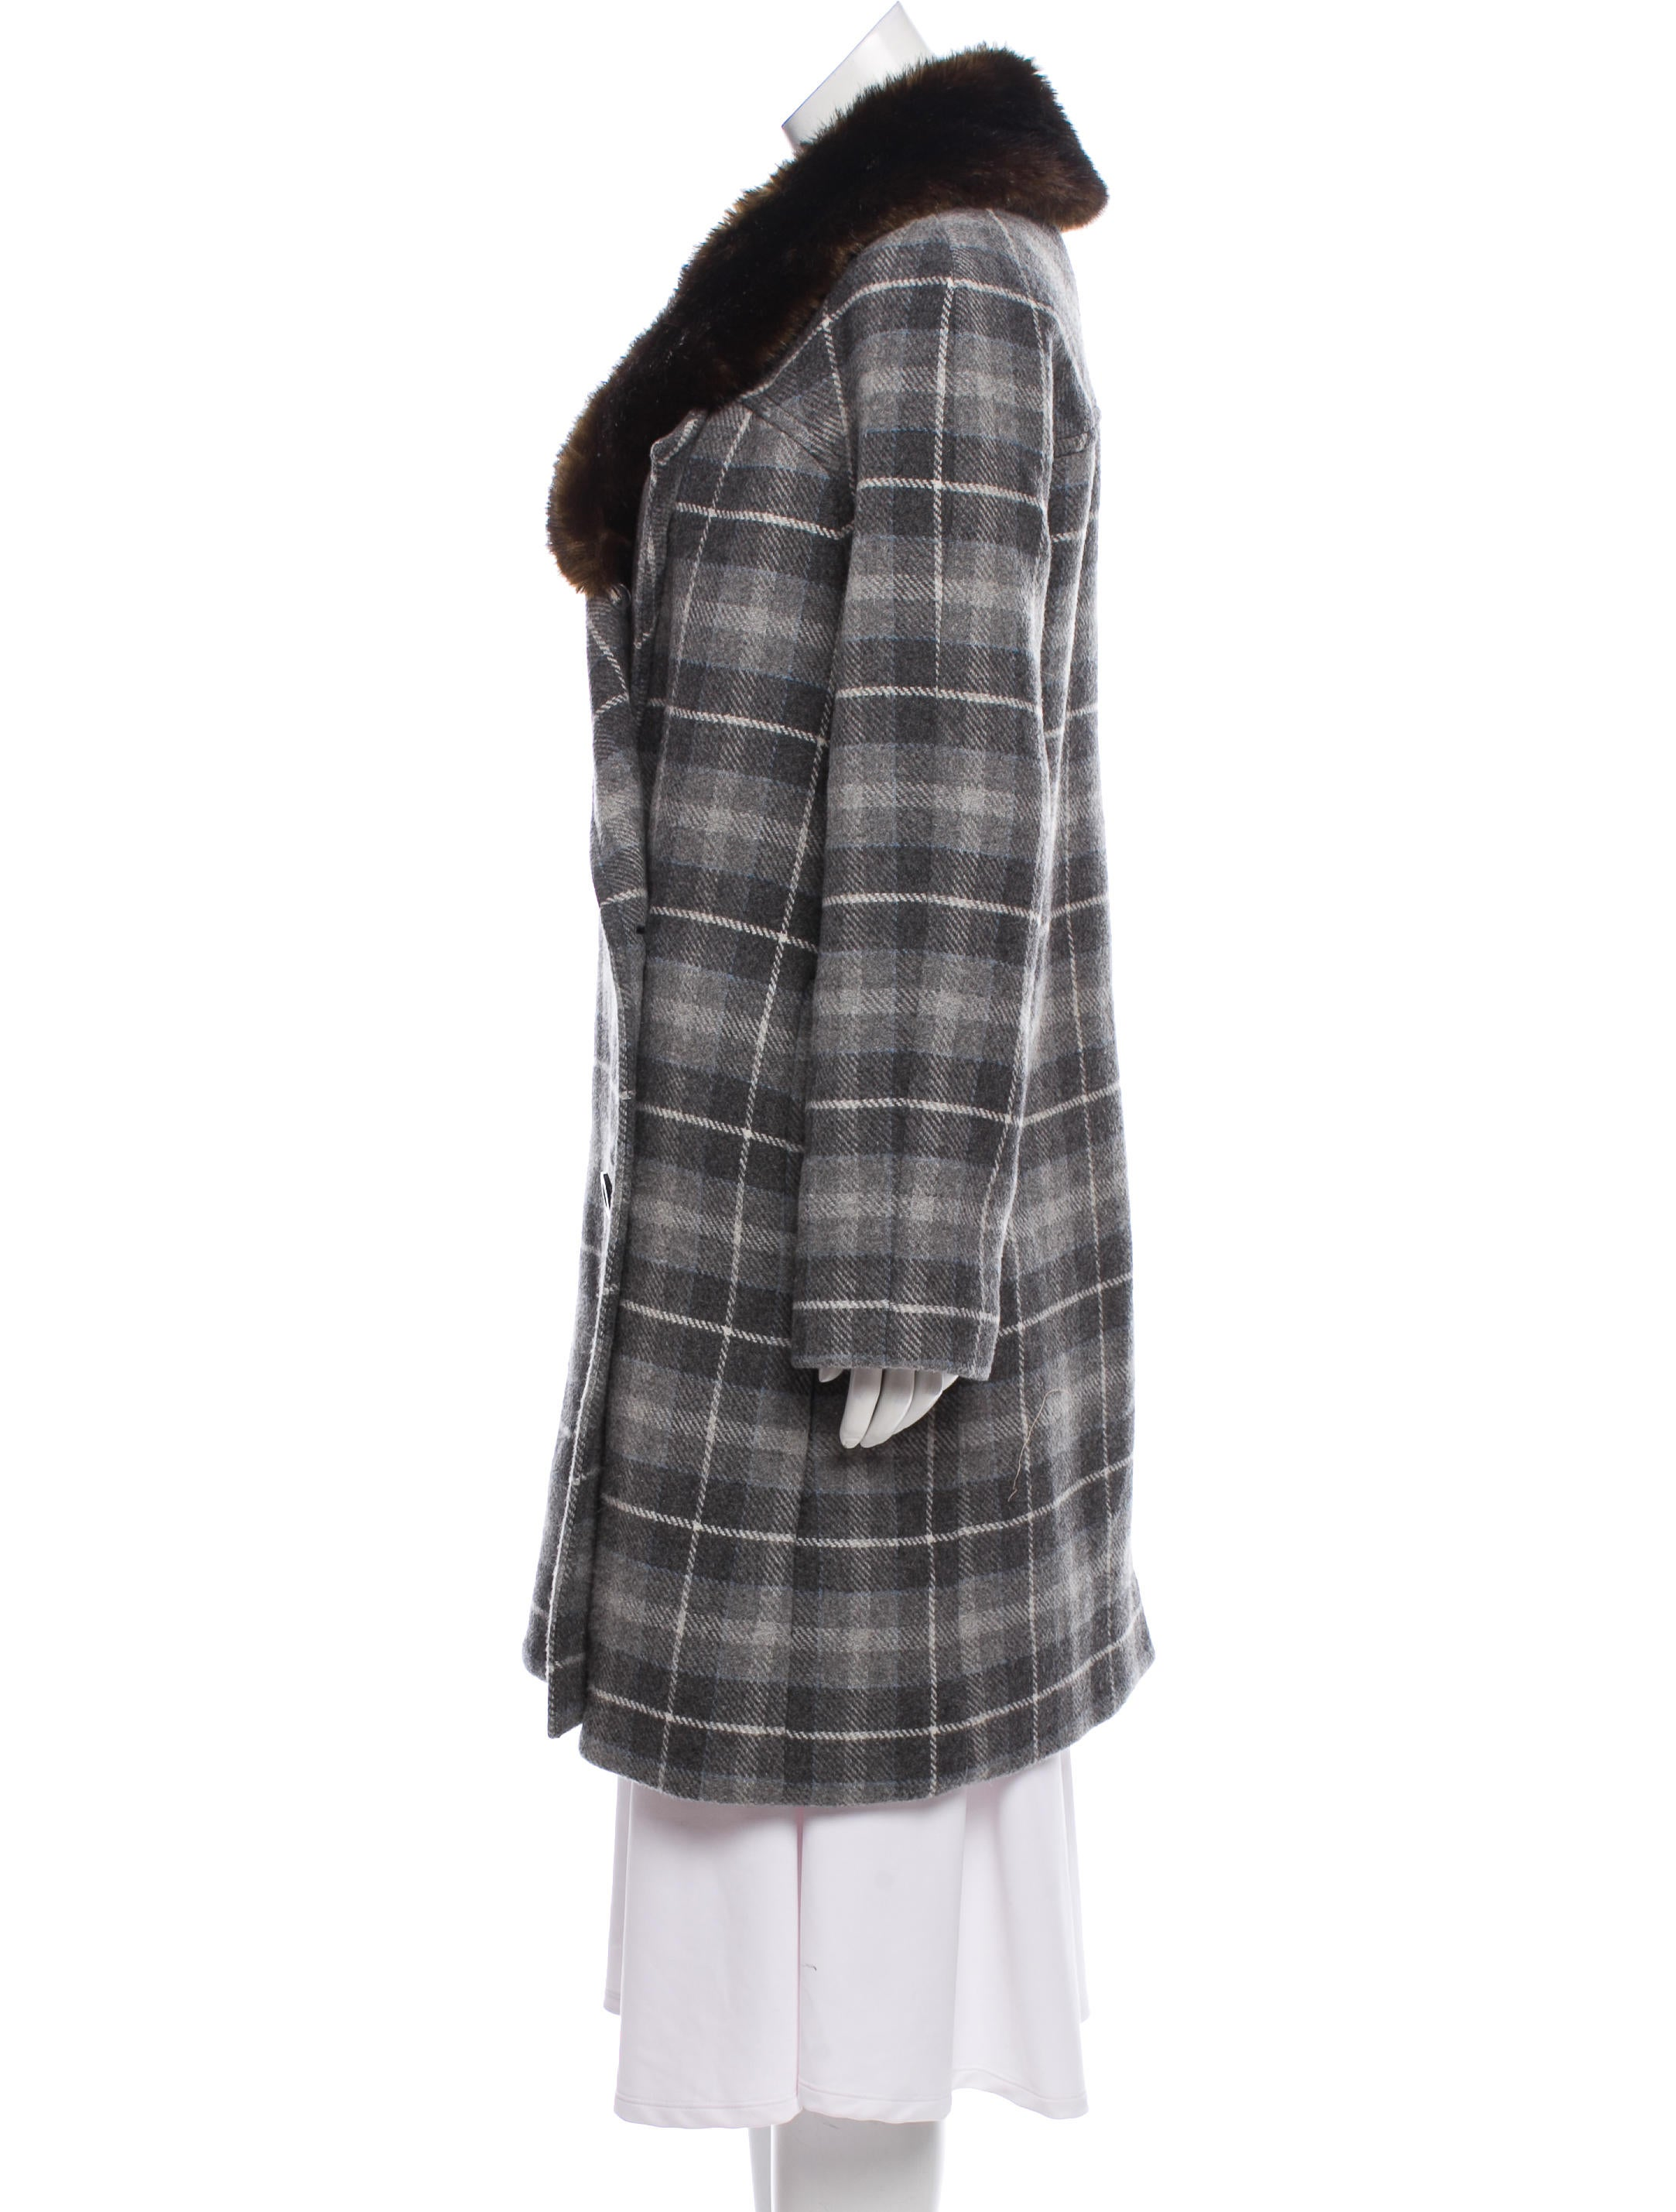 Cheap Sale Pre Order Fashion Style For Sale Thakoon Addition Wool Fur-Trim Knee-Length Coat tc6r9sXl